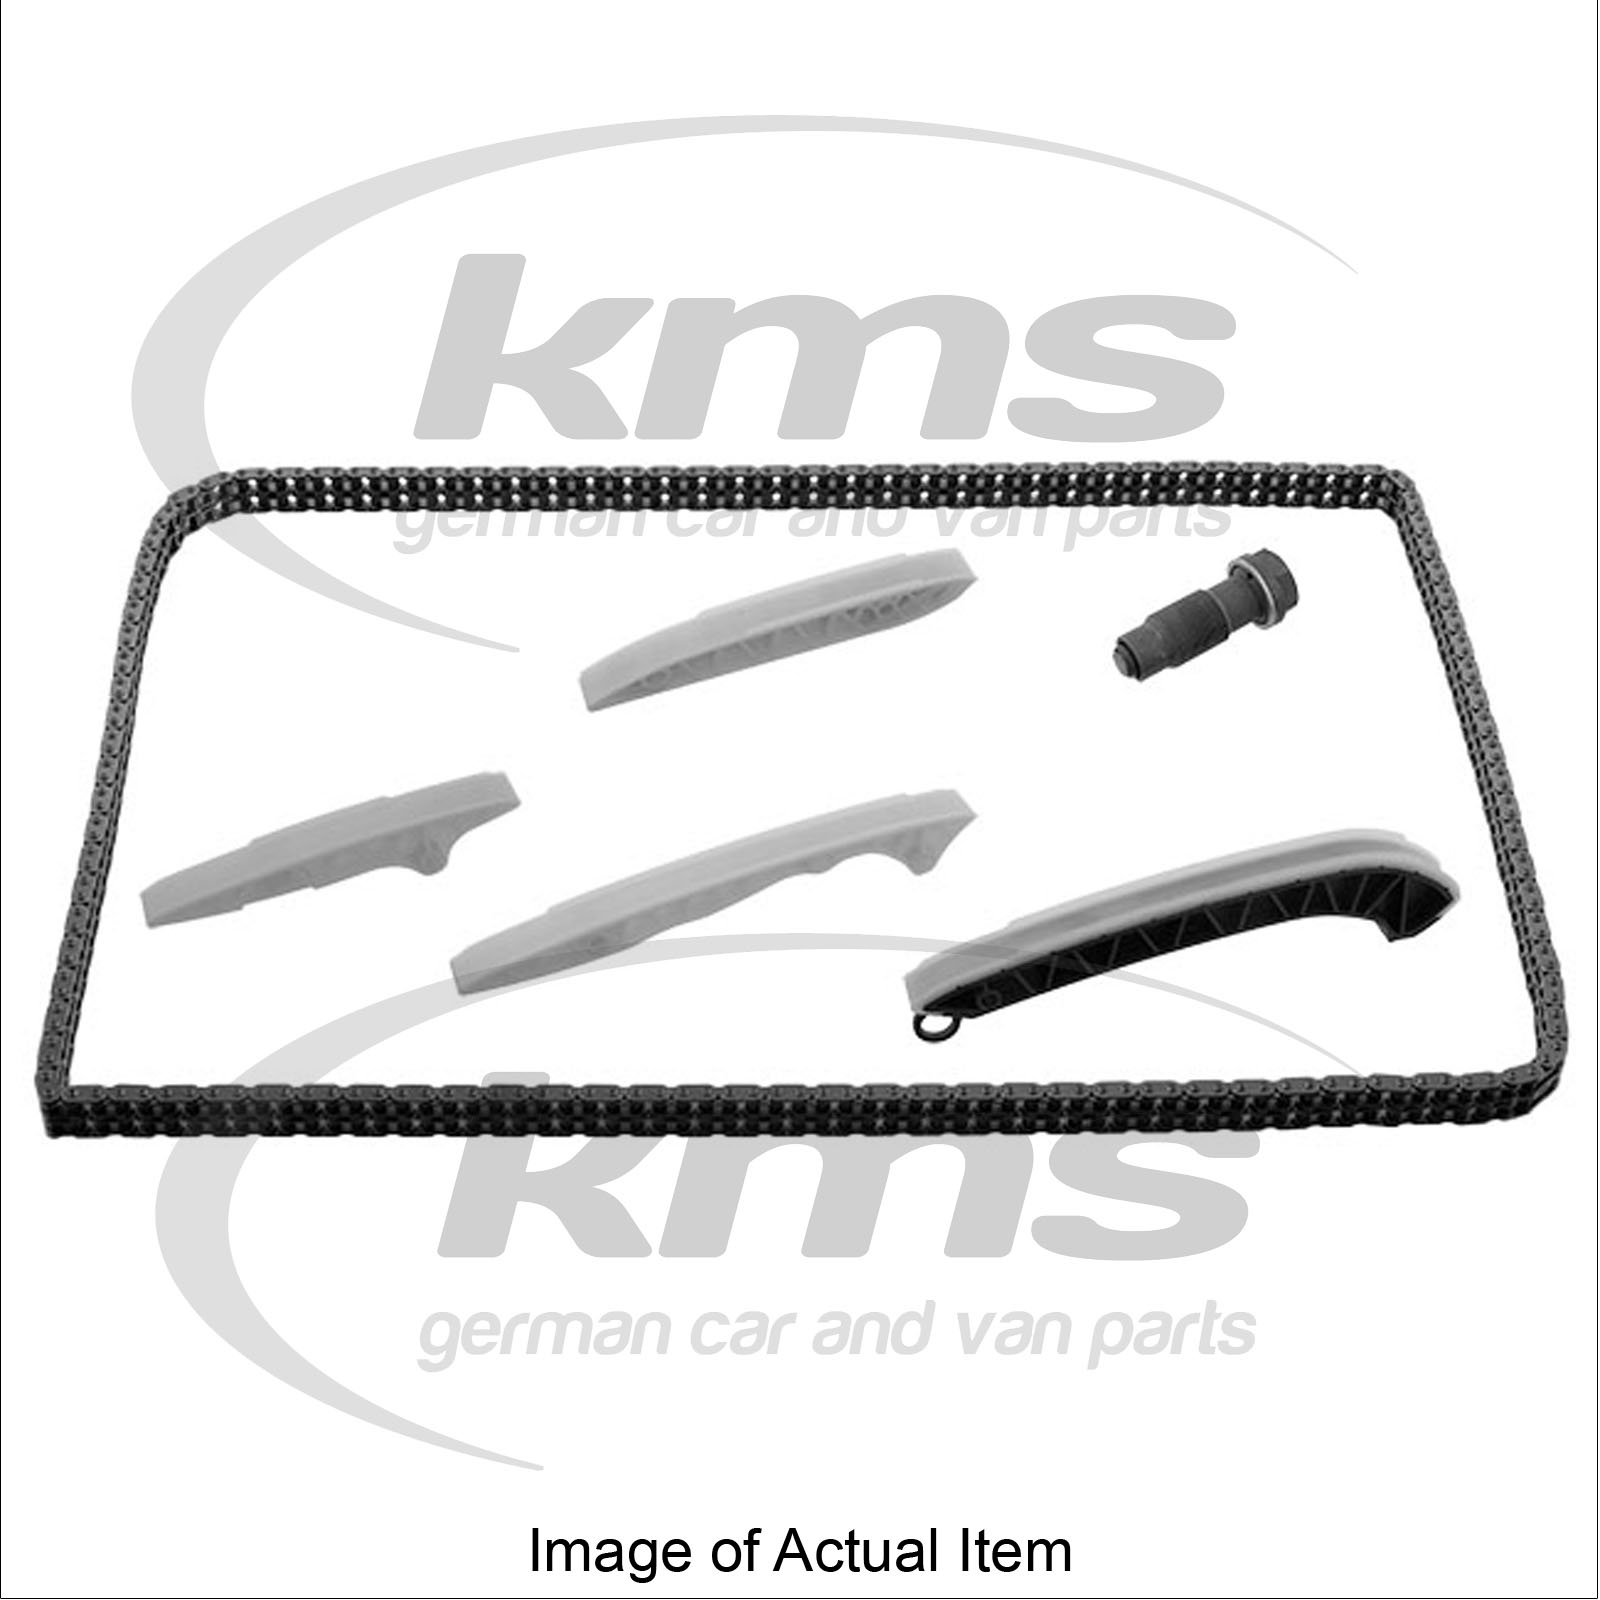 Timing chain kit mercedes benz clc class coupe clc230 for Mercedes benz chain